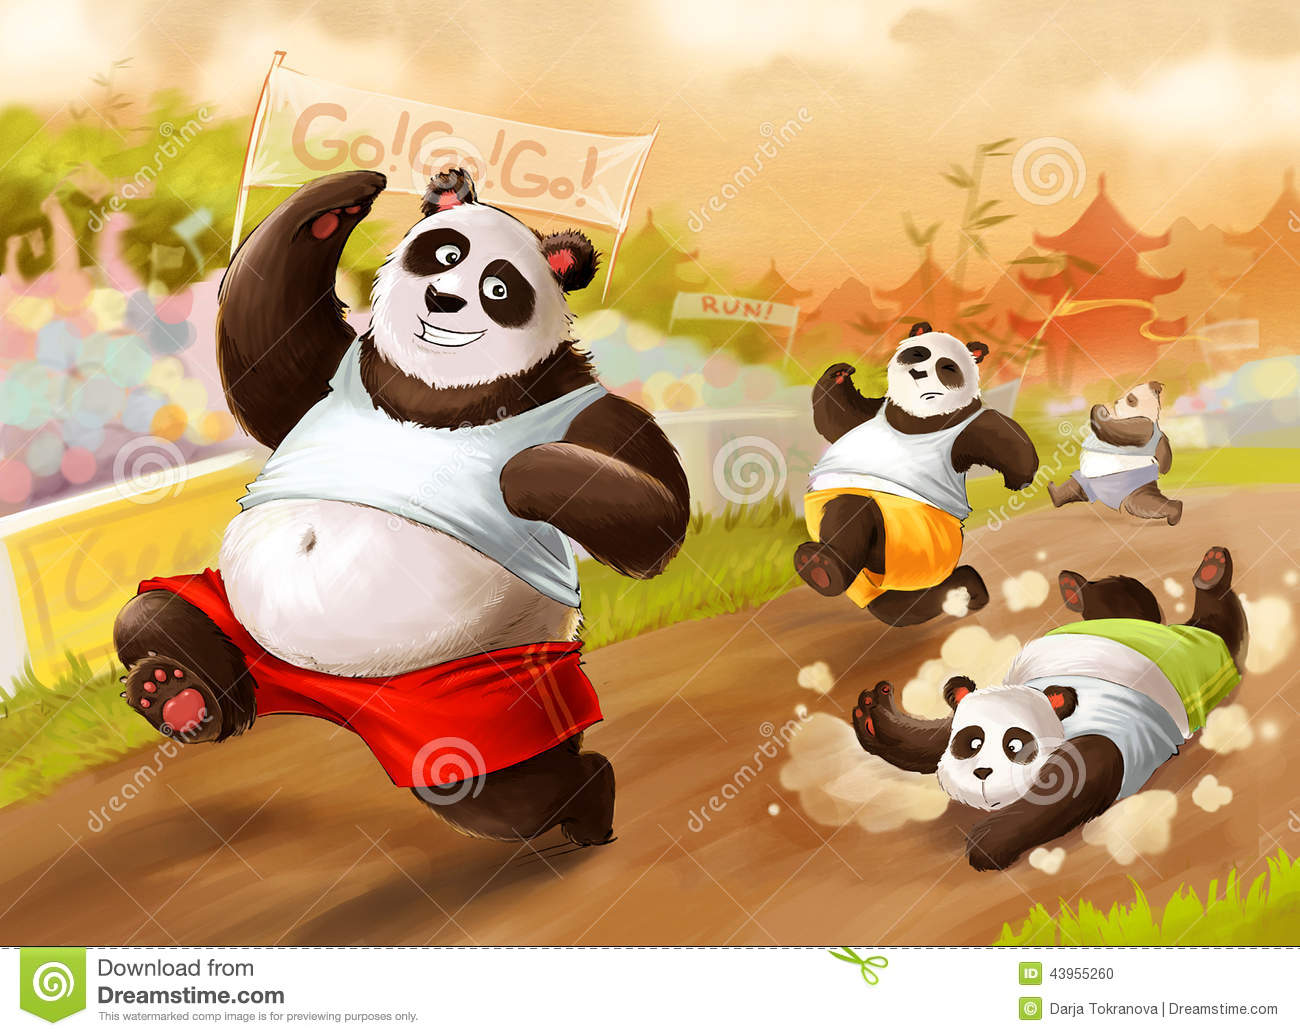 Cute cartoon pandas running a marathon.